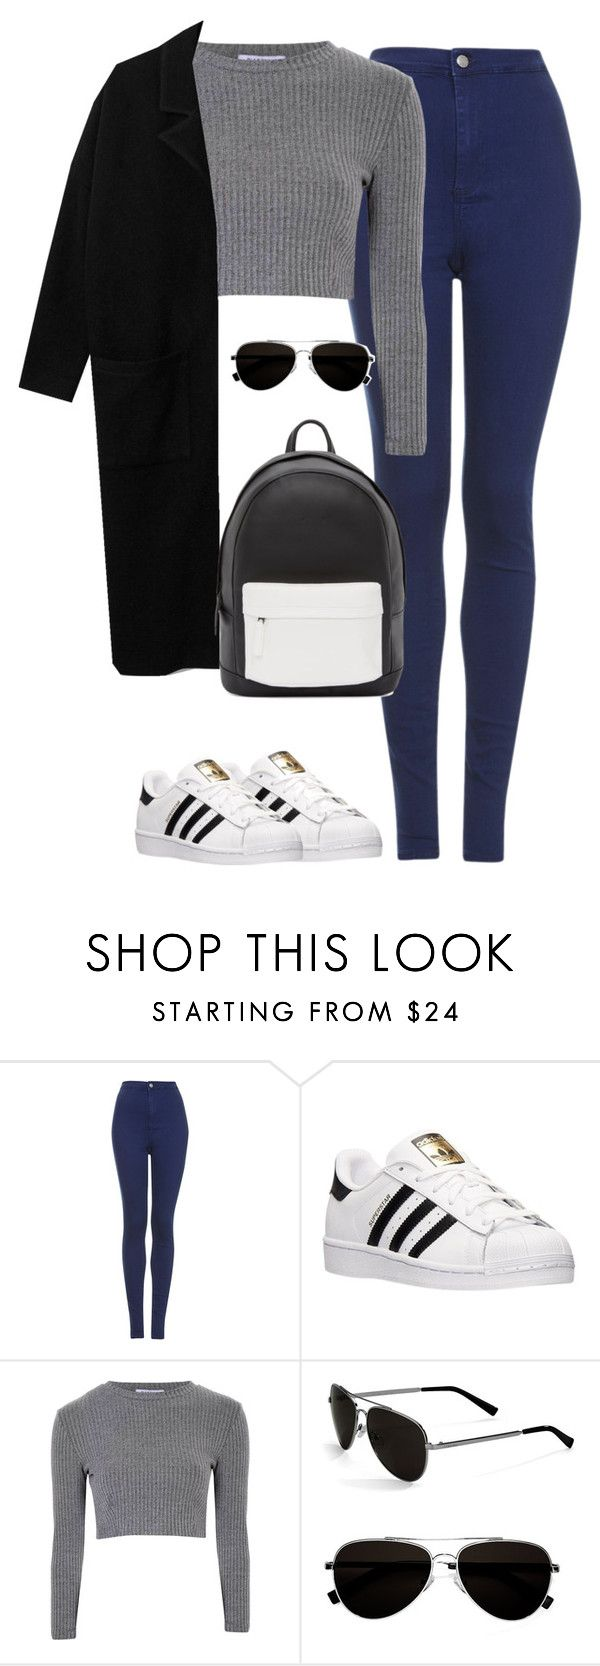 """Untitled #463"" by christyandnef on Polyvore featuring Topshop, adidas, Glamorous, Calvin Klein, PB 0110, women's clothing, women, female, woman and misses"